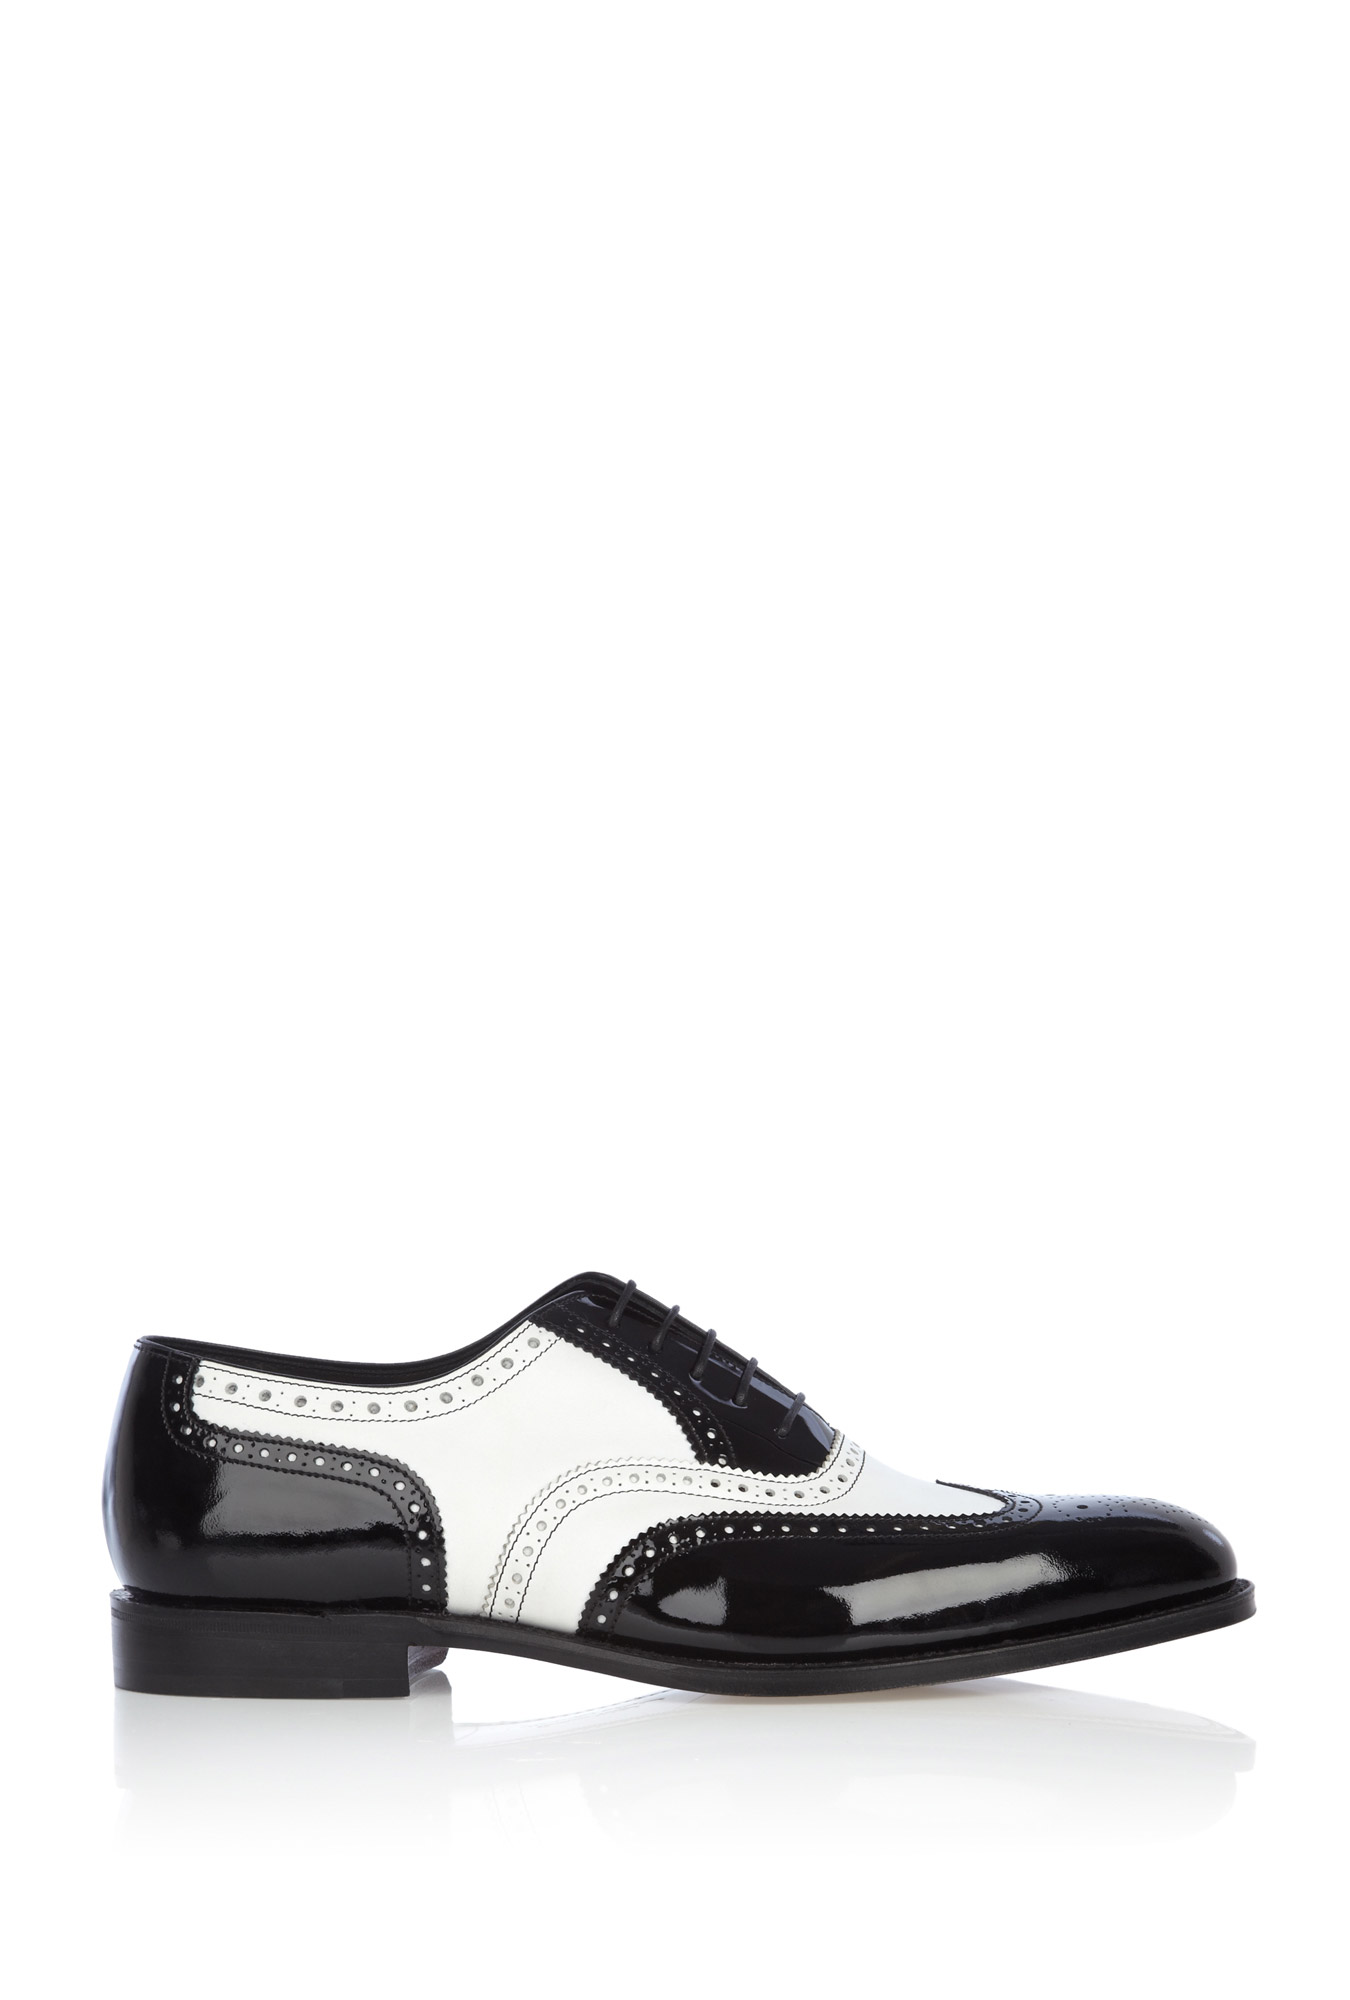 loake black patent white calf dress shoes in black for